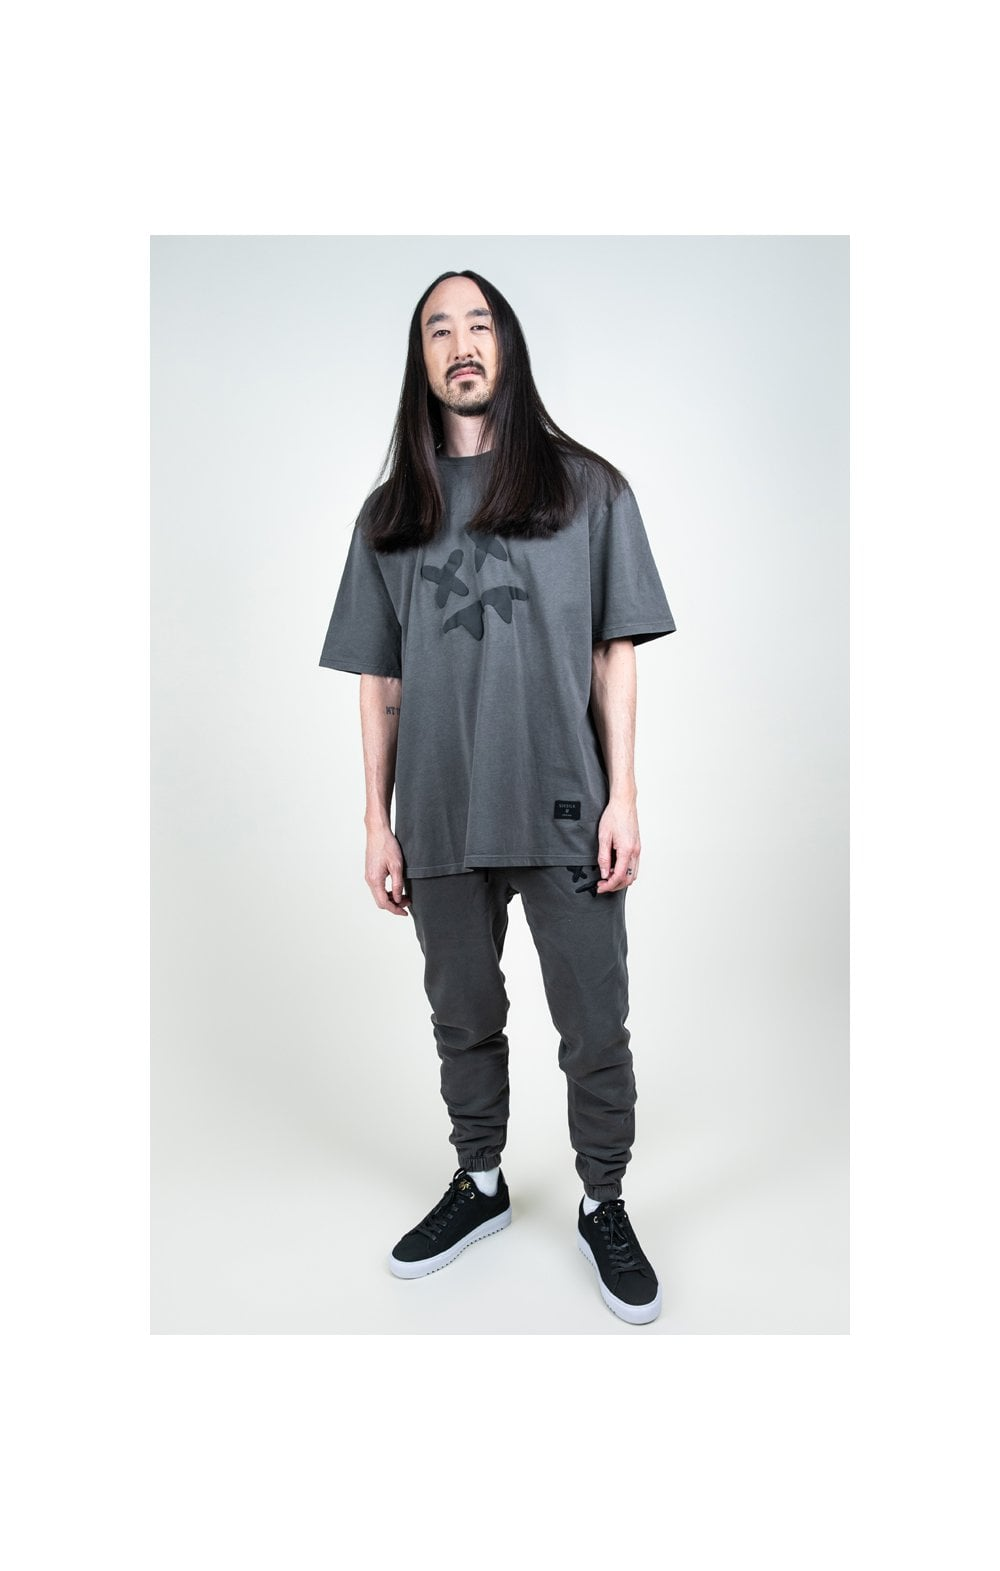 Load image into Gallery viewer, SikSilk X Steve Aoki Joggers - Washed Grey (5)